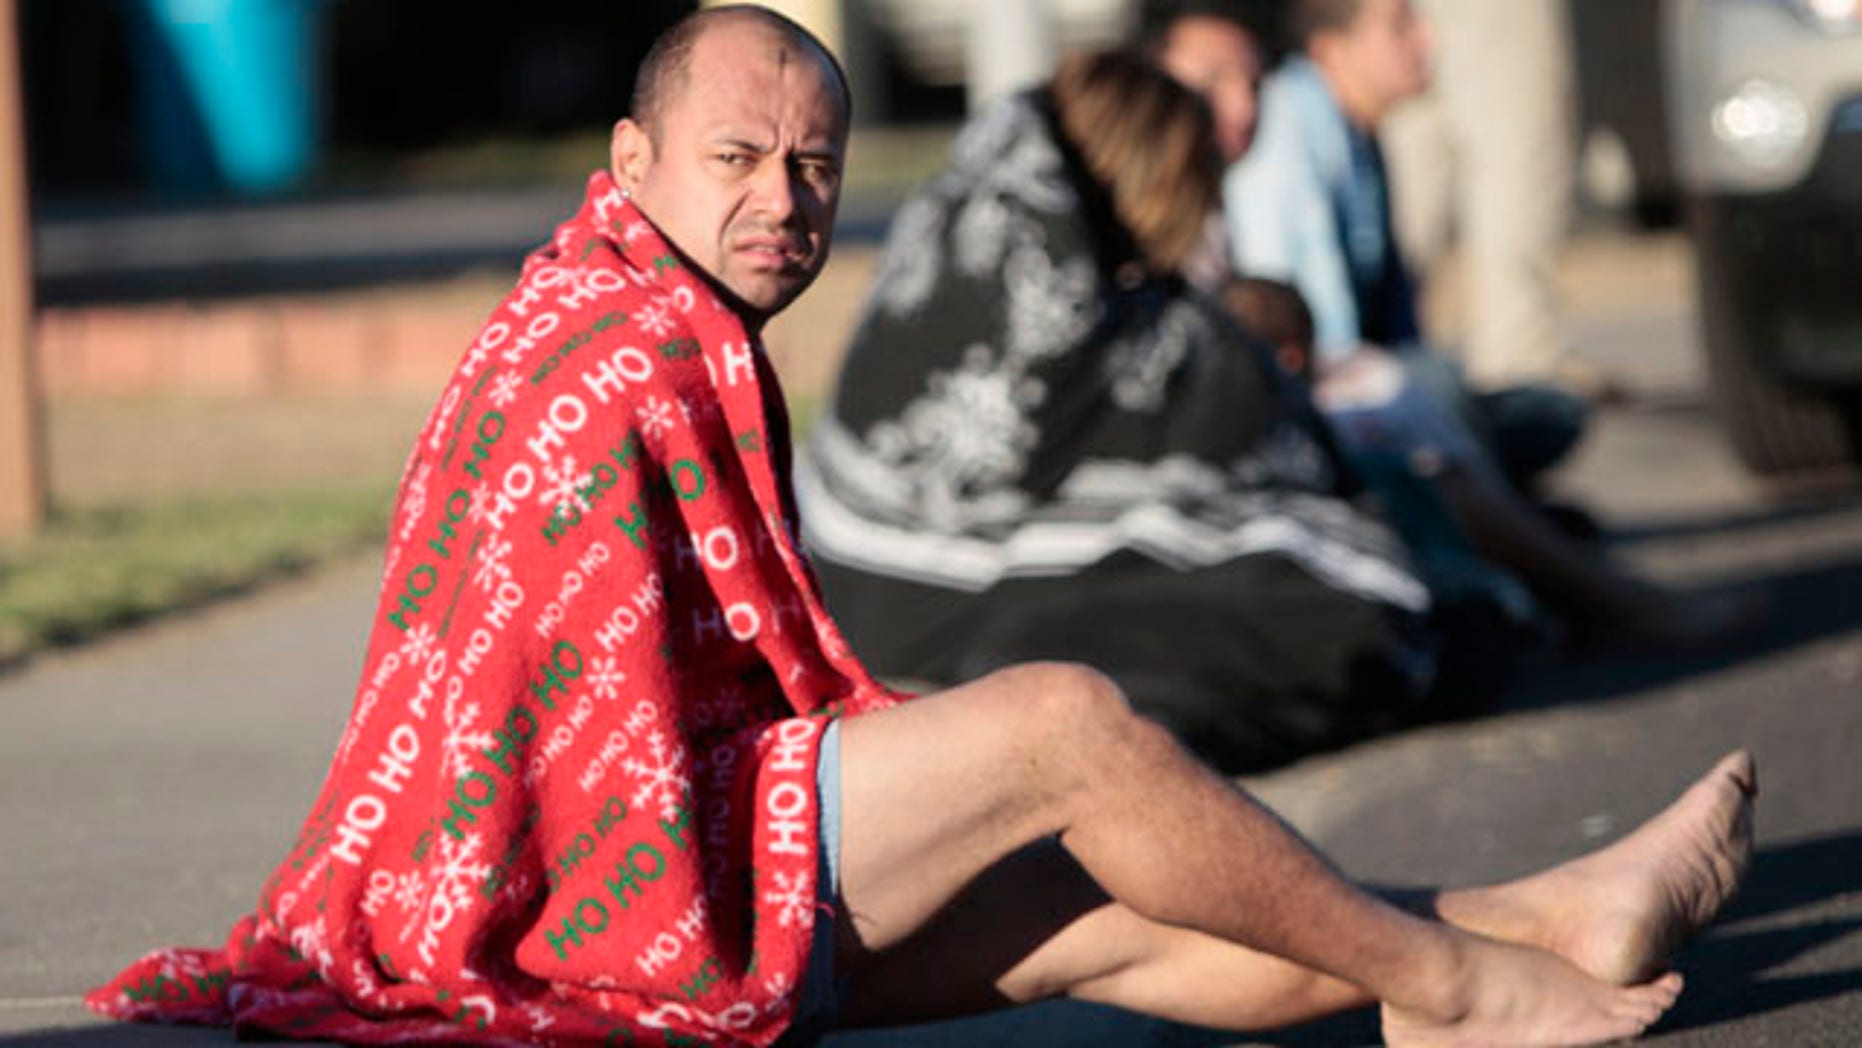 Nov. 10: Mark Rodriguez-Banks sits on the ground during a raid in Phoenix.